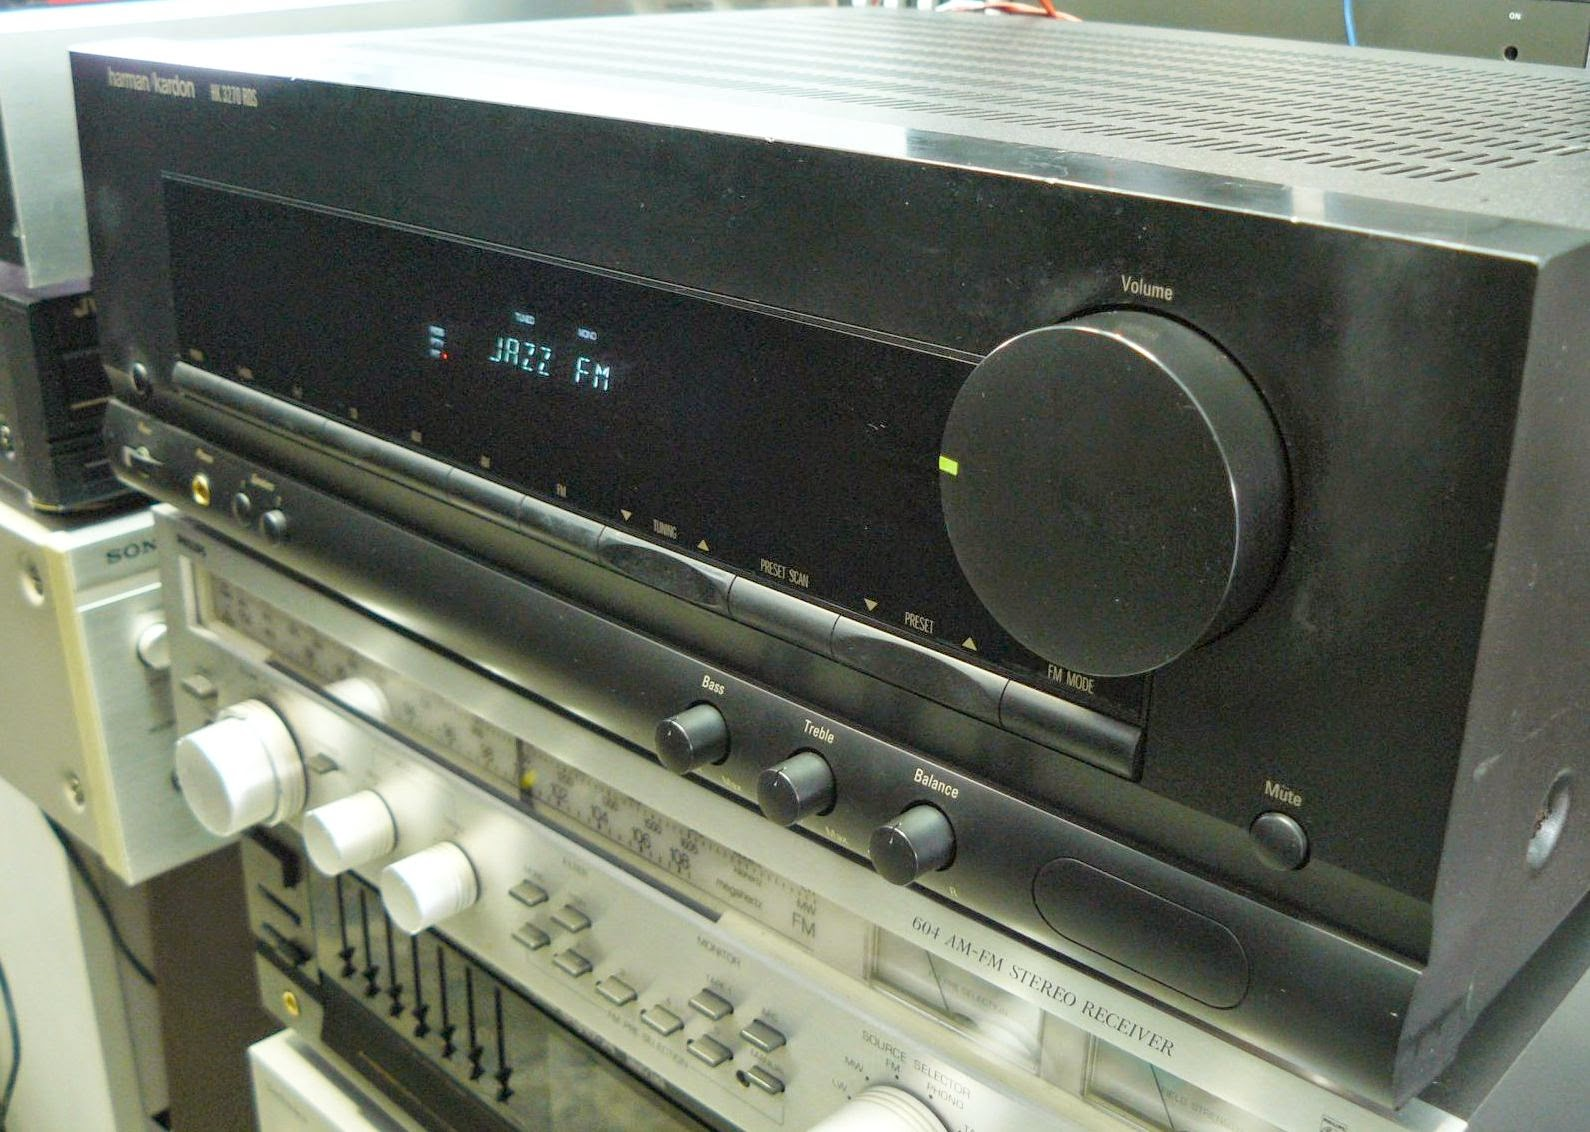 Harman Kardon Avr 500 rds Manual